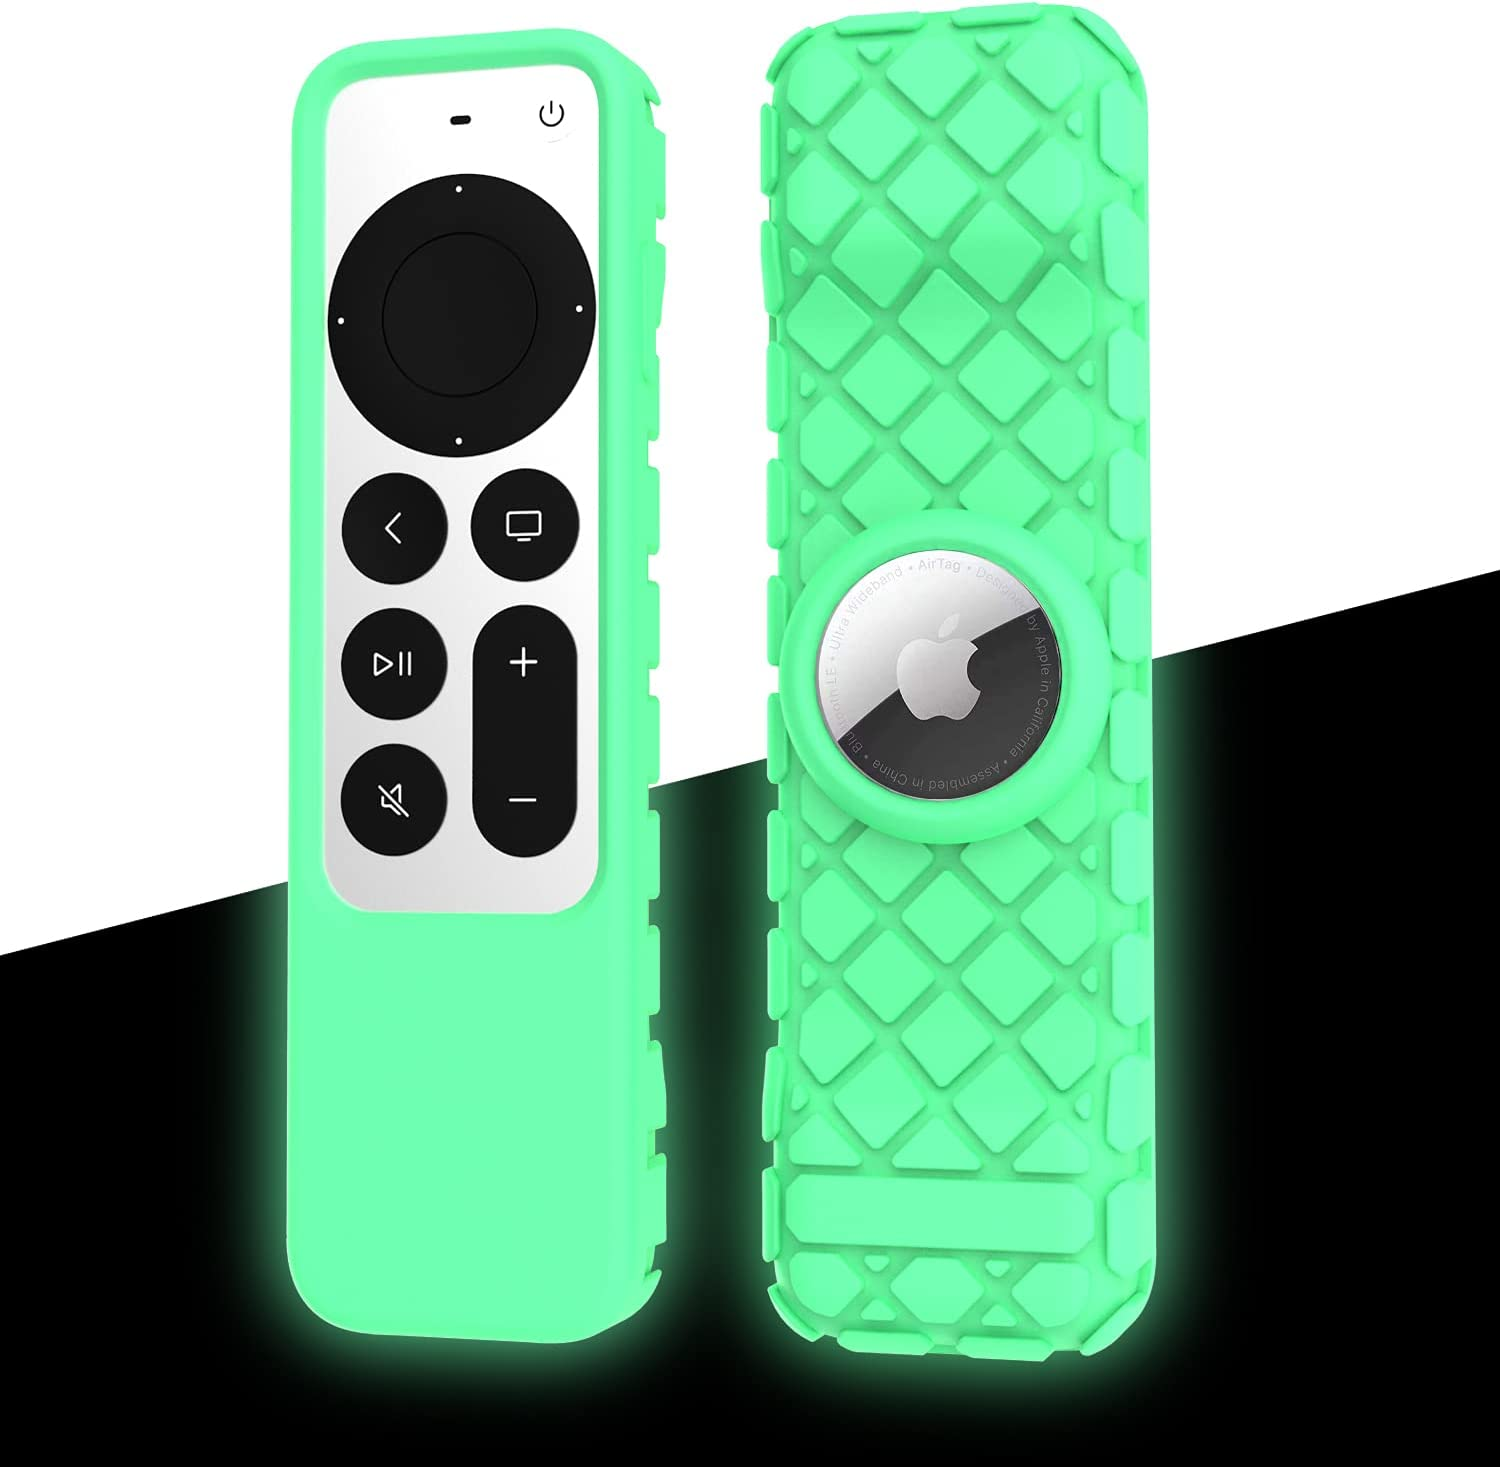 Fit Designed for 2021 Apple TV Siri Remote Controls and Compatible with Apple AirTag, Suublg Silicone Remote Case Protective Cover -Drop Protection, Full Access to All Buttons (Luminous Green)